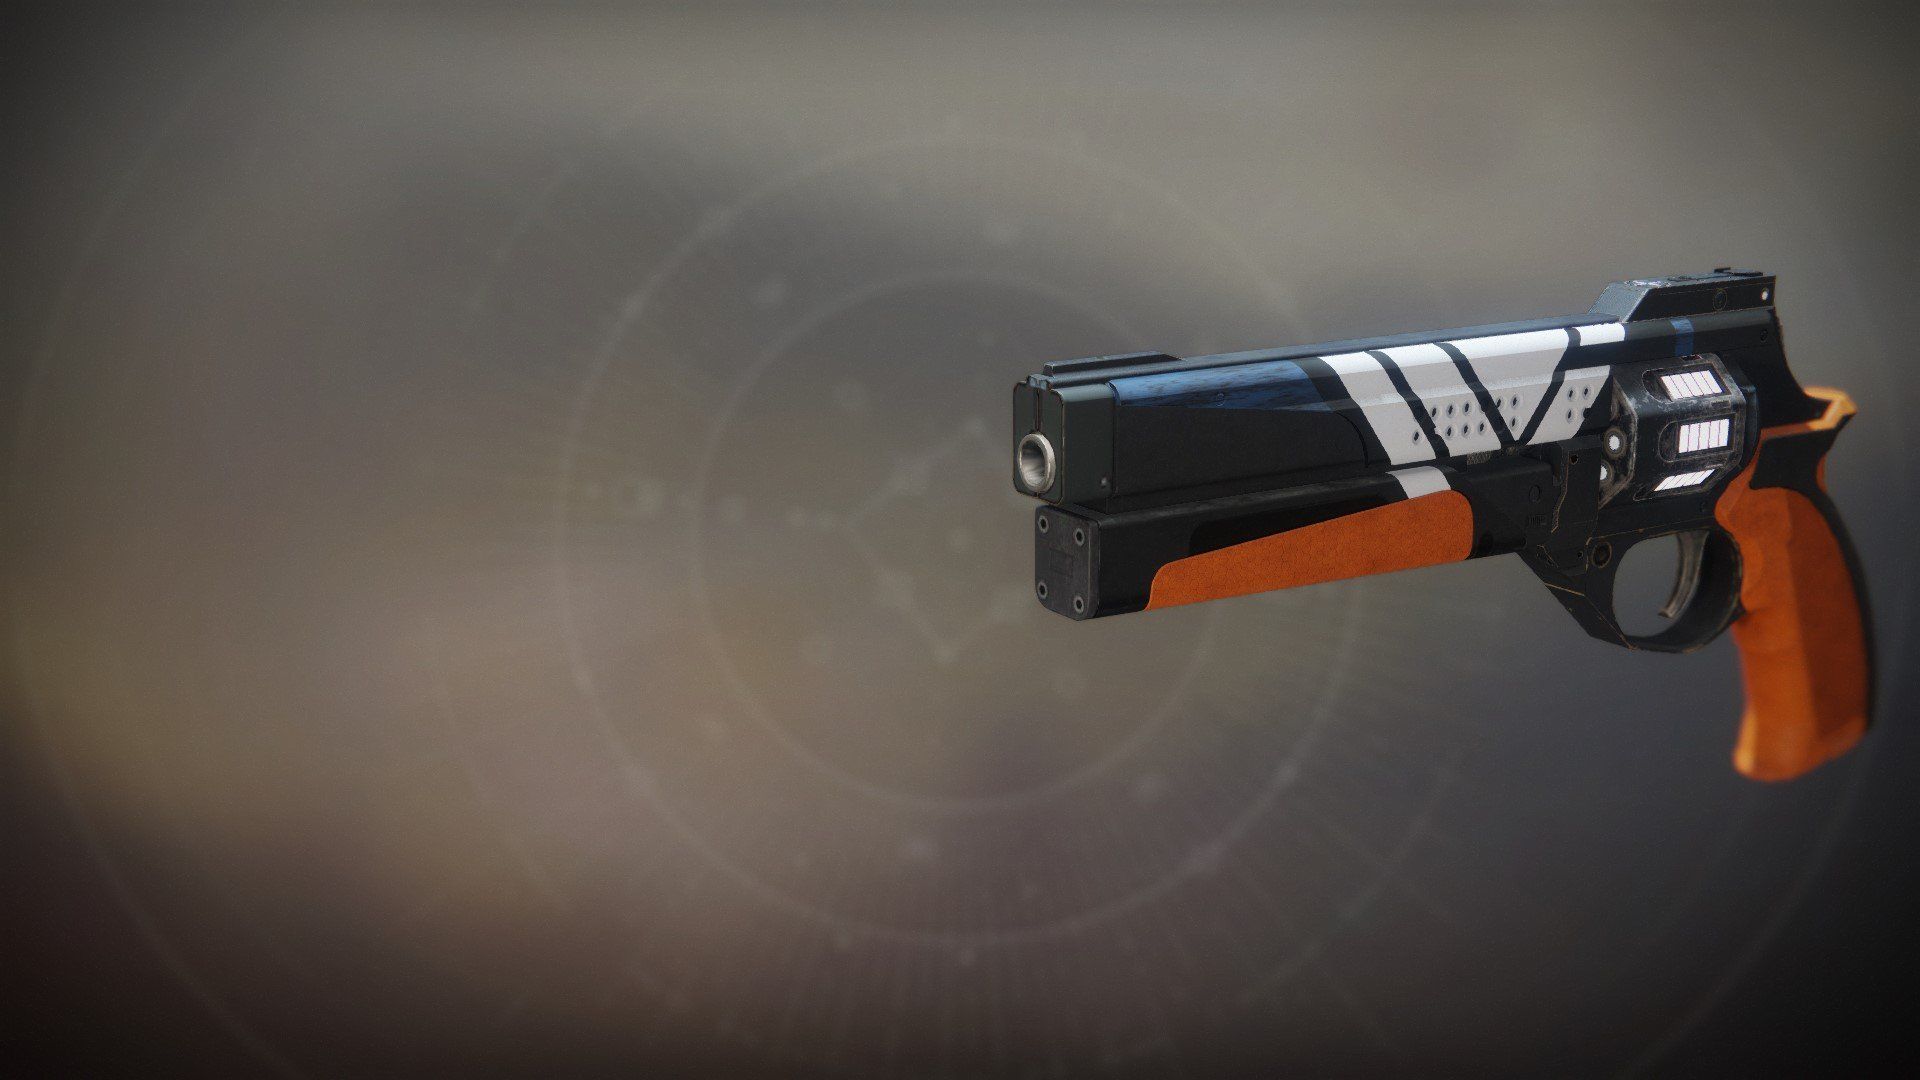 An in-game render of the Service Revolver.